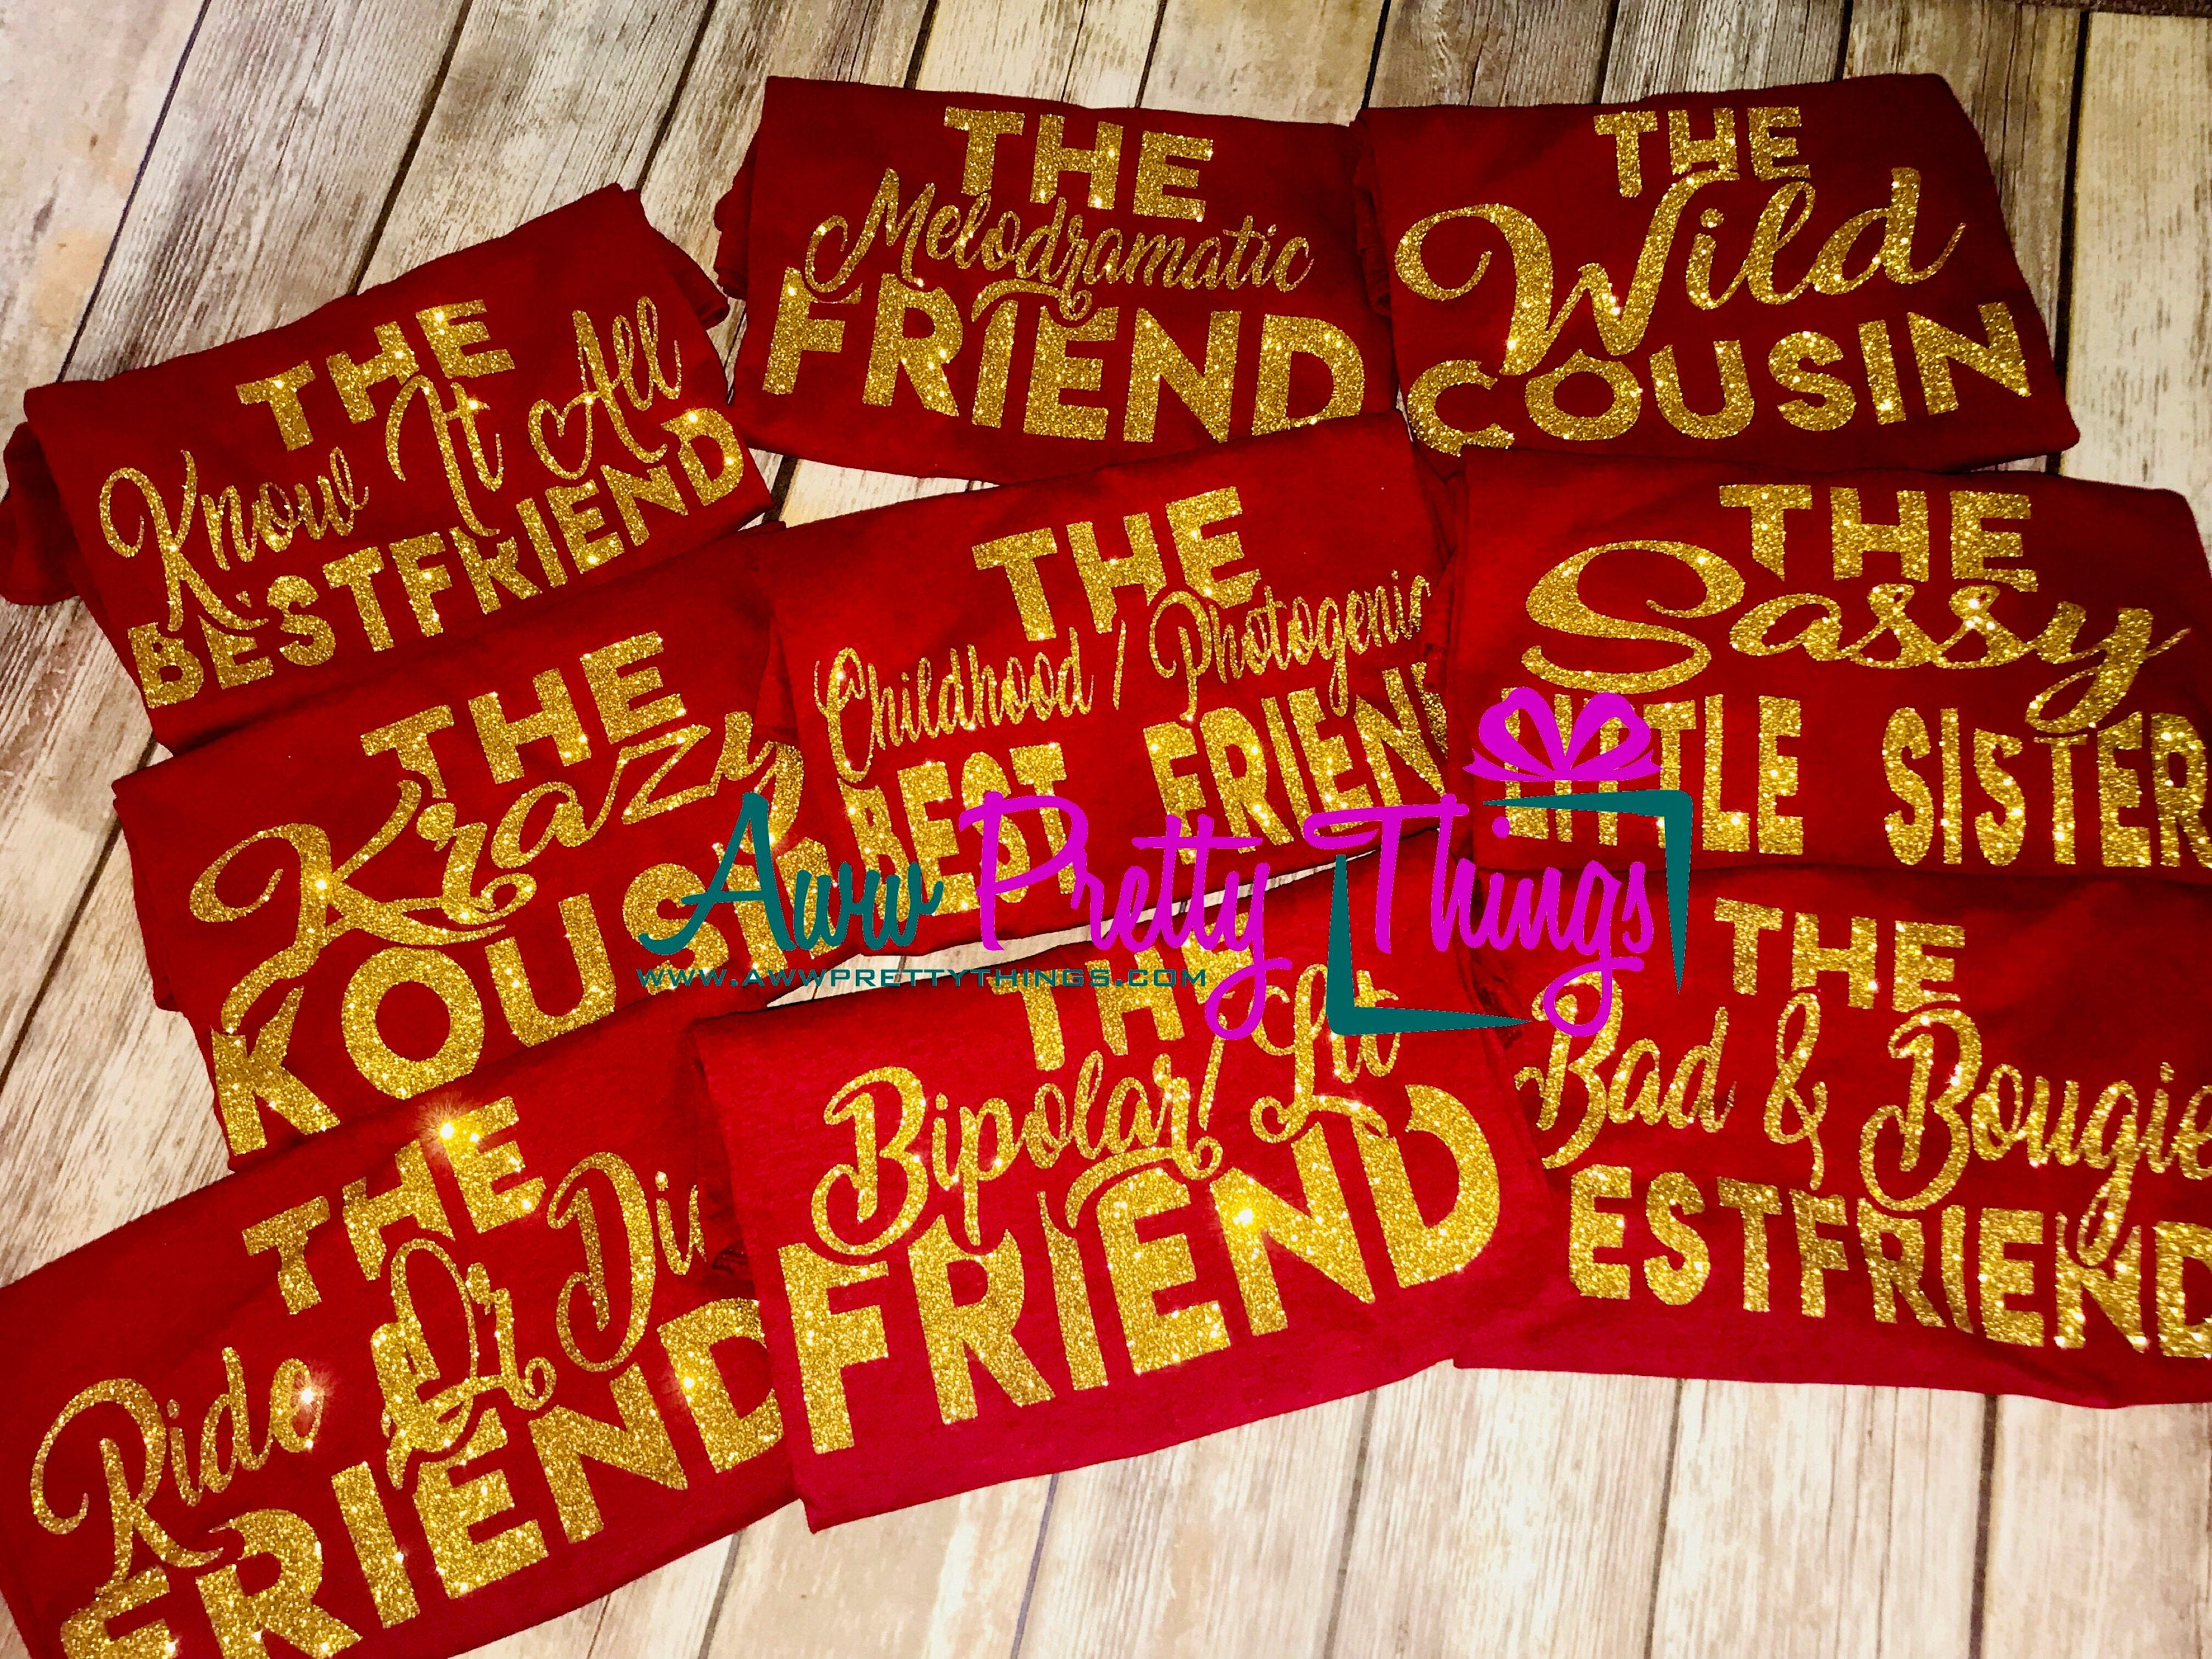 Birthday Gang Shirts Birthday Shirts for Friends Describing Friends Shirts Birthday Crew Birthday Group Shirts Squad Goals Group Shirts